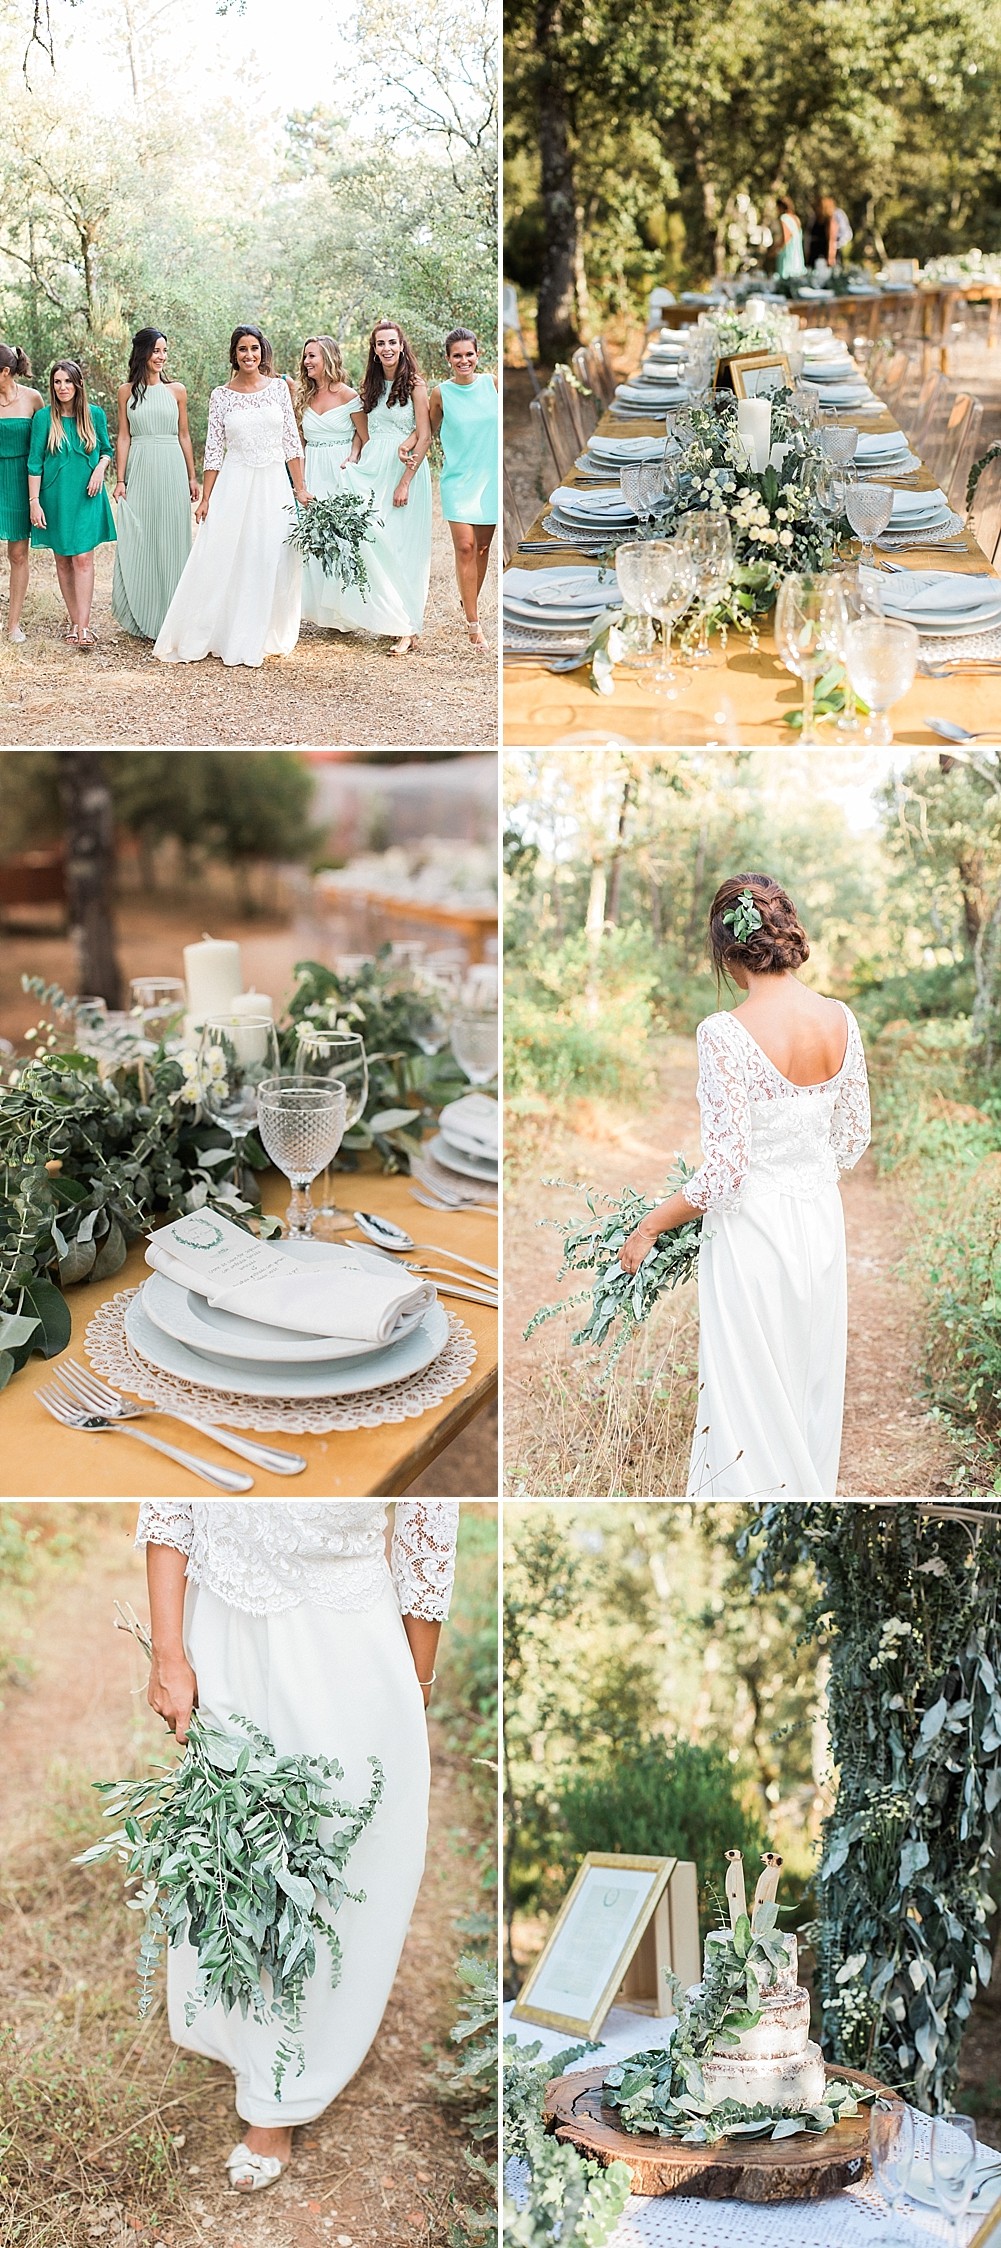 Greenery & Foliage Nature Filled Destination Wedding at Luz Houses in Portugal by Maria Rão Photography